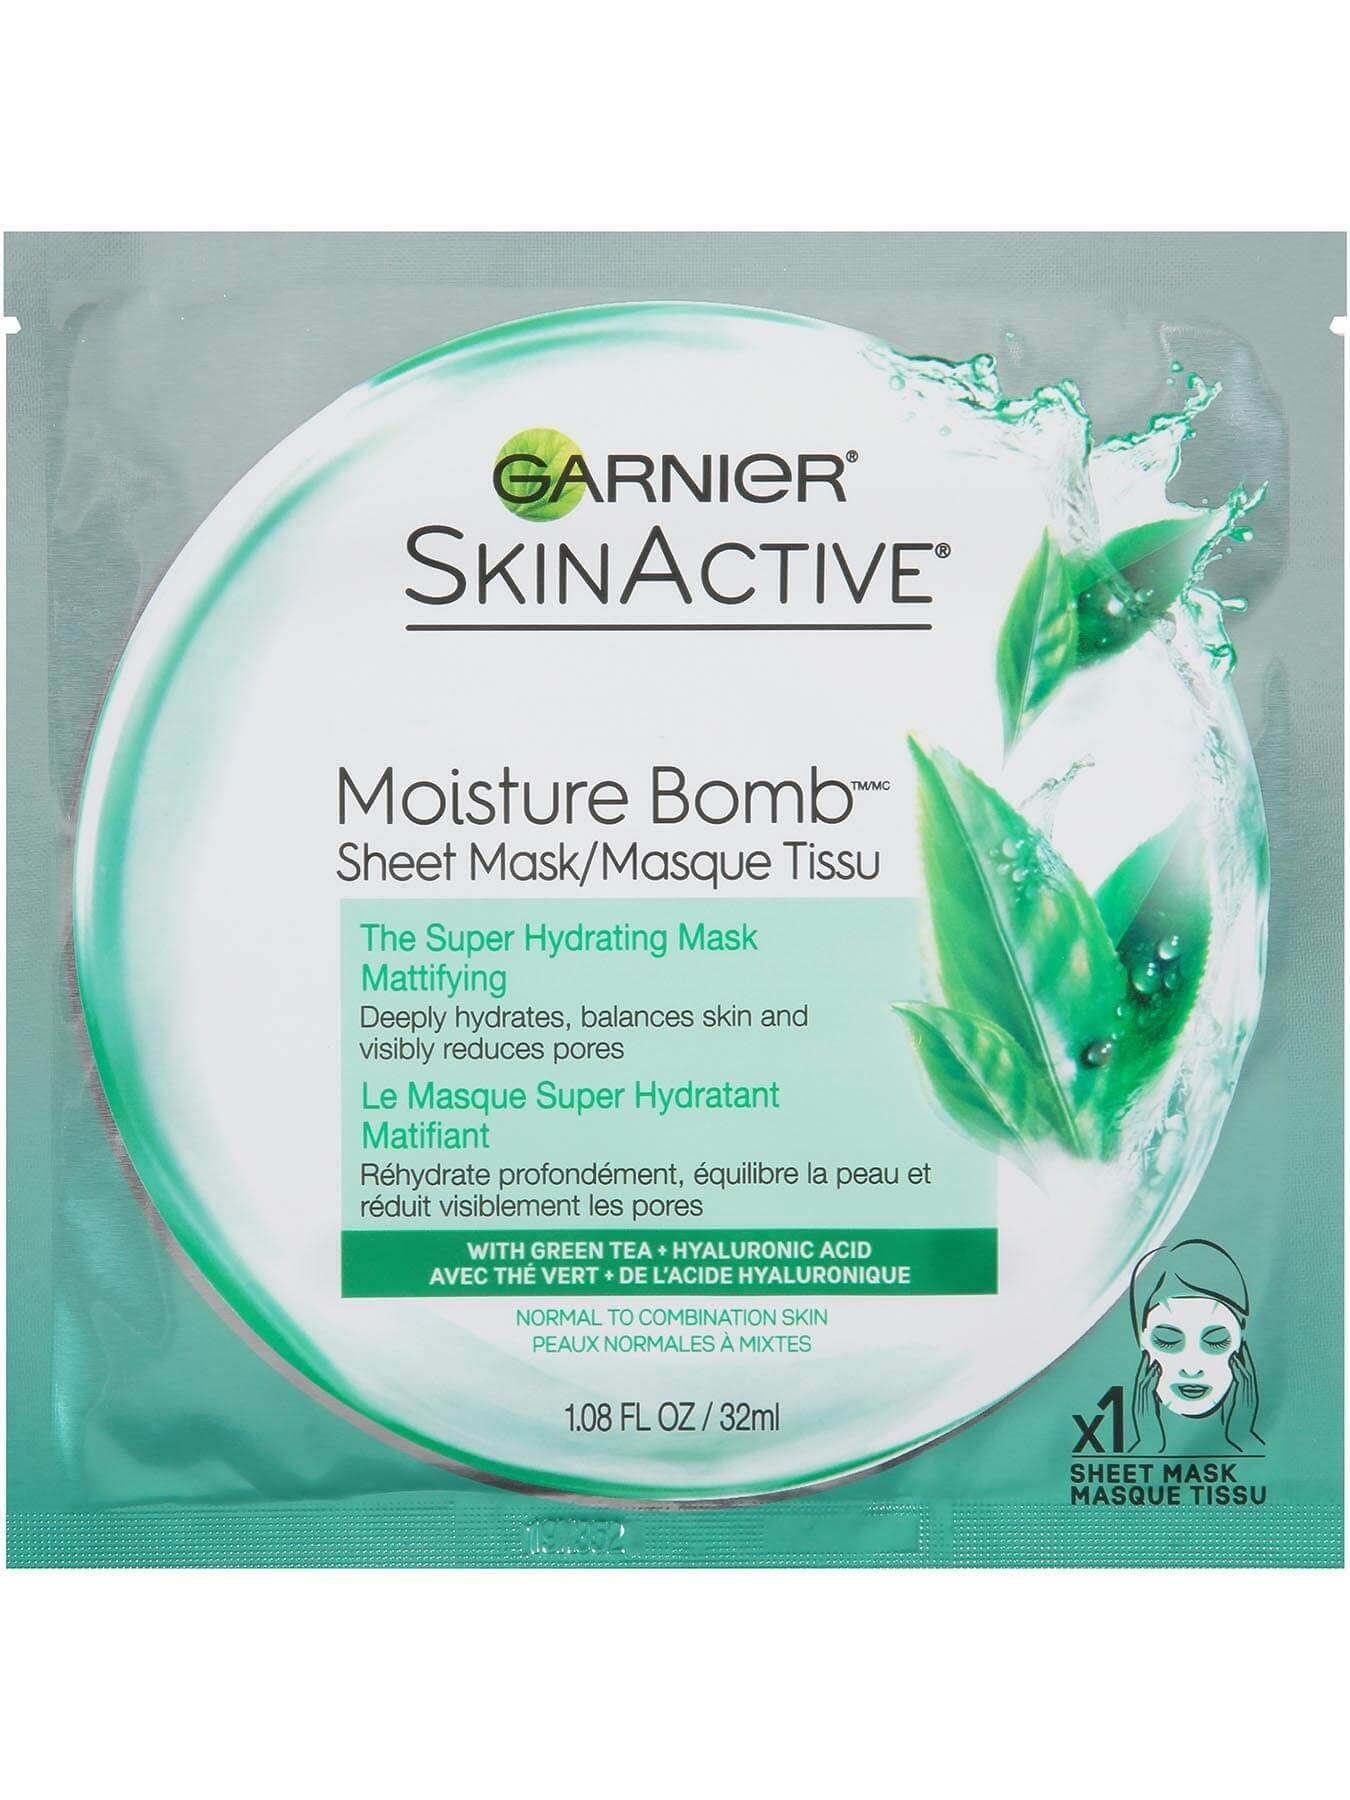 Garnier Skin Active Moisture Bomb Sheet Mask - Super Hydrating and Mattifying